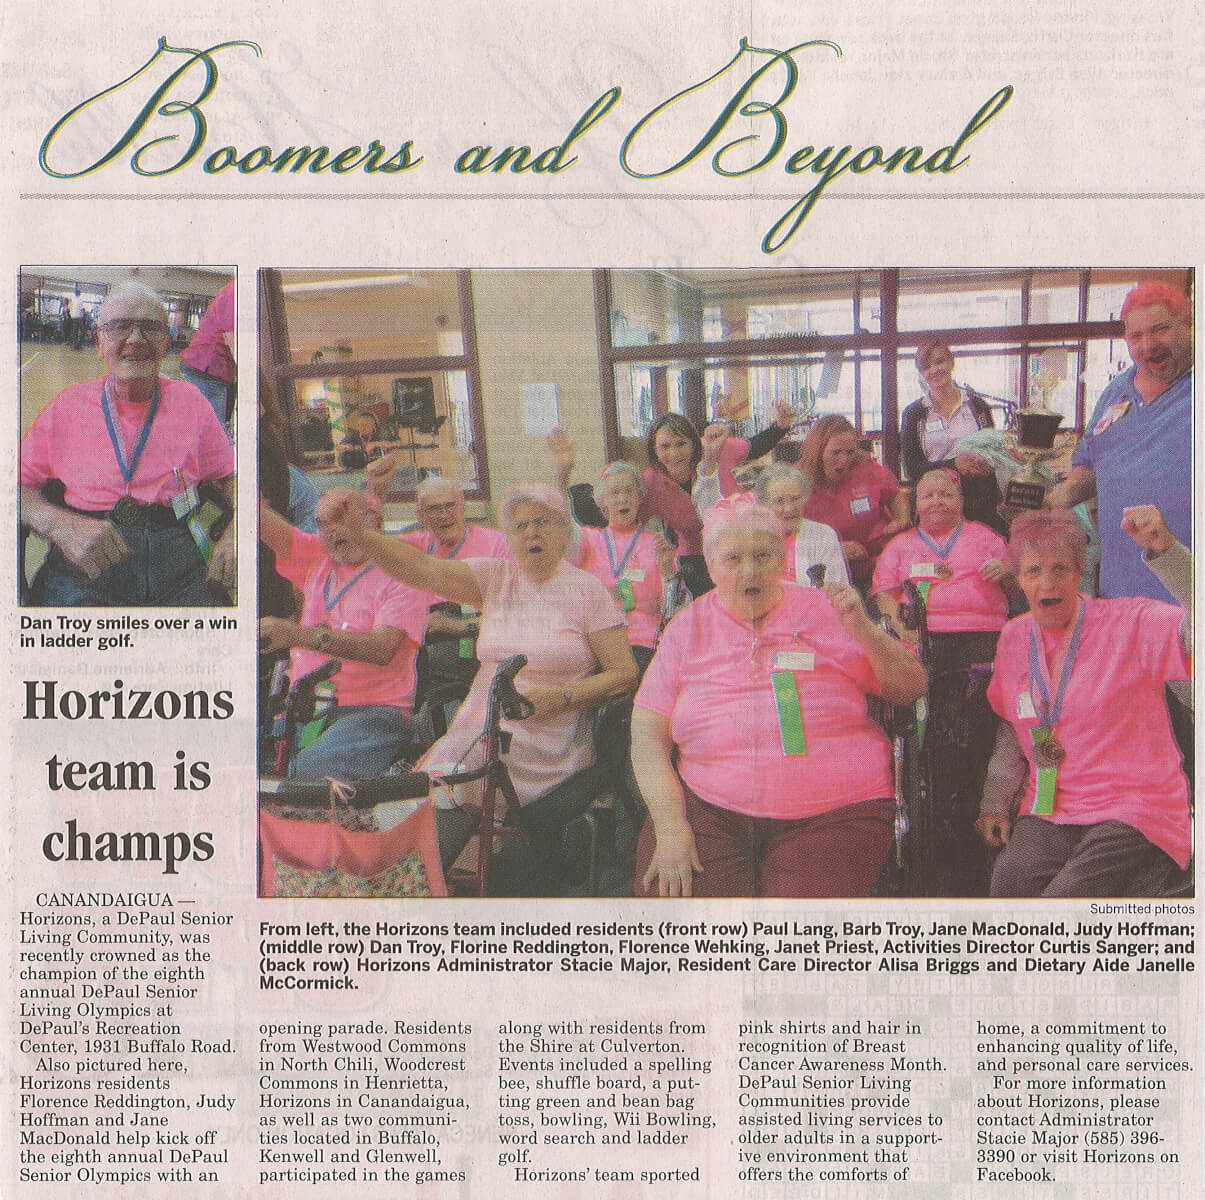 Horizons Win the Senior Olympics article in Boomers and Beyond, November 9, 2014